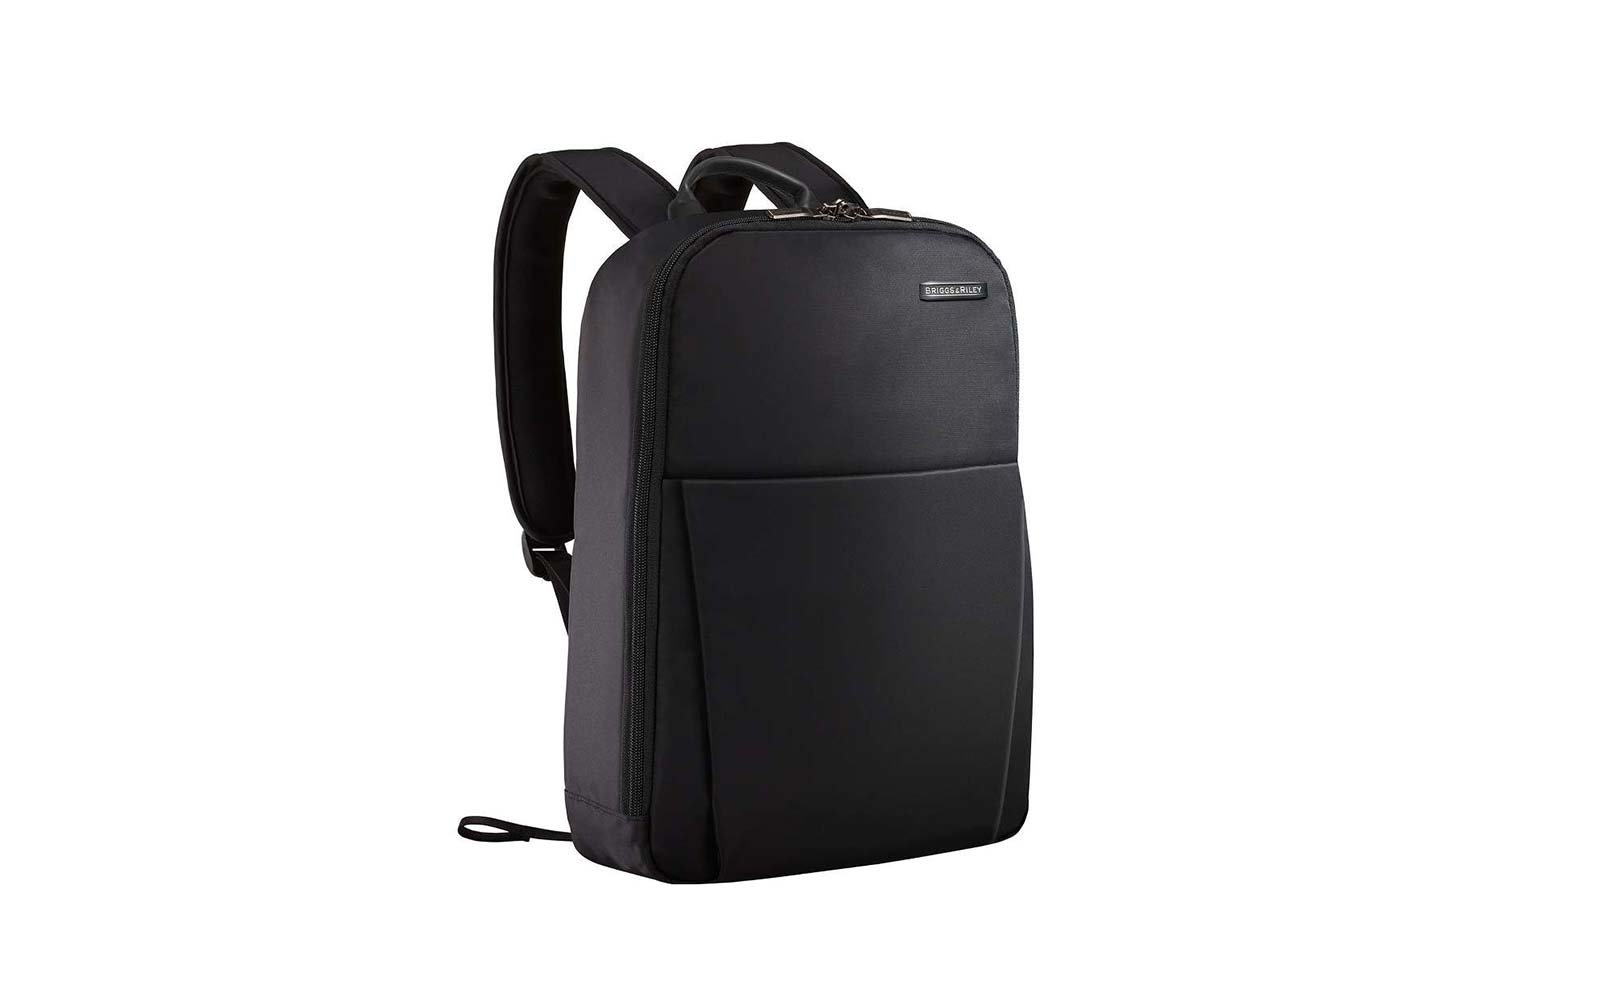 The Best Laptop Bags for Business Travel